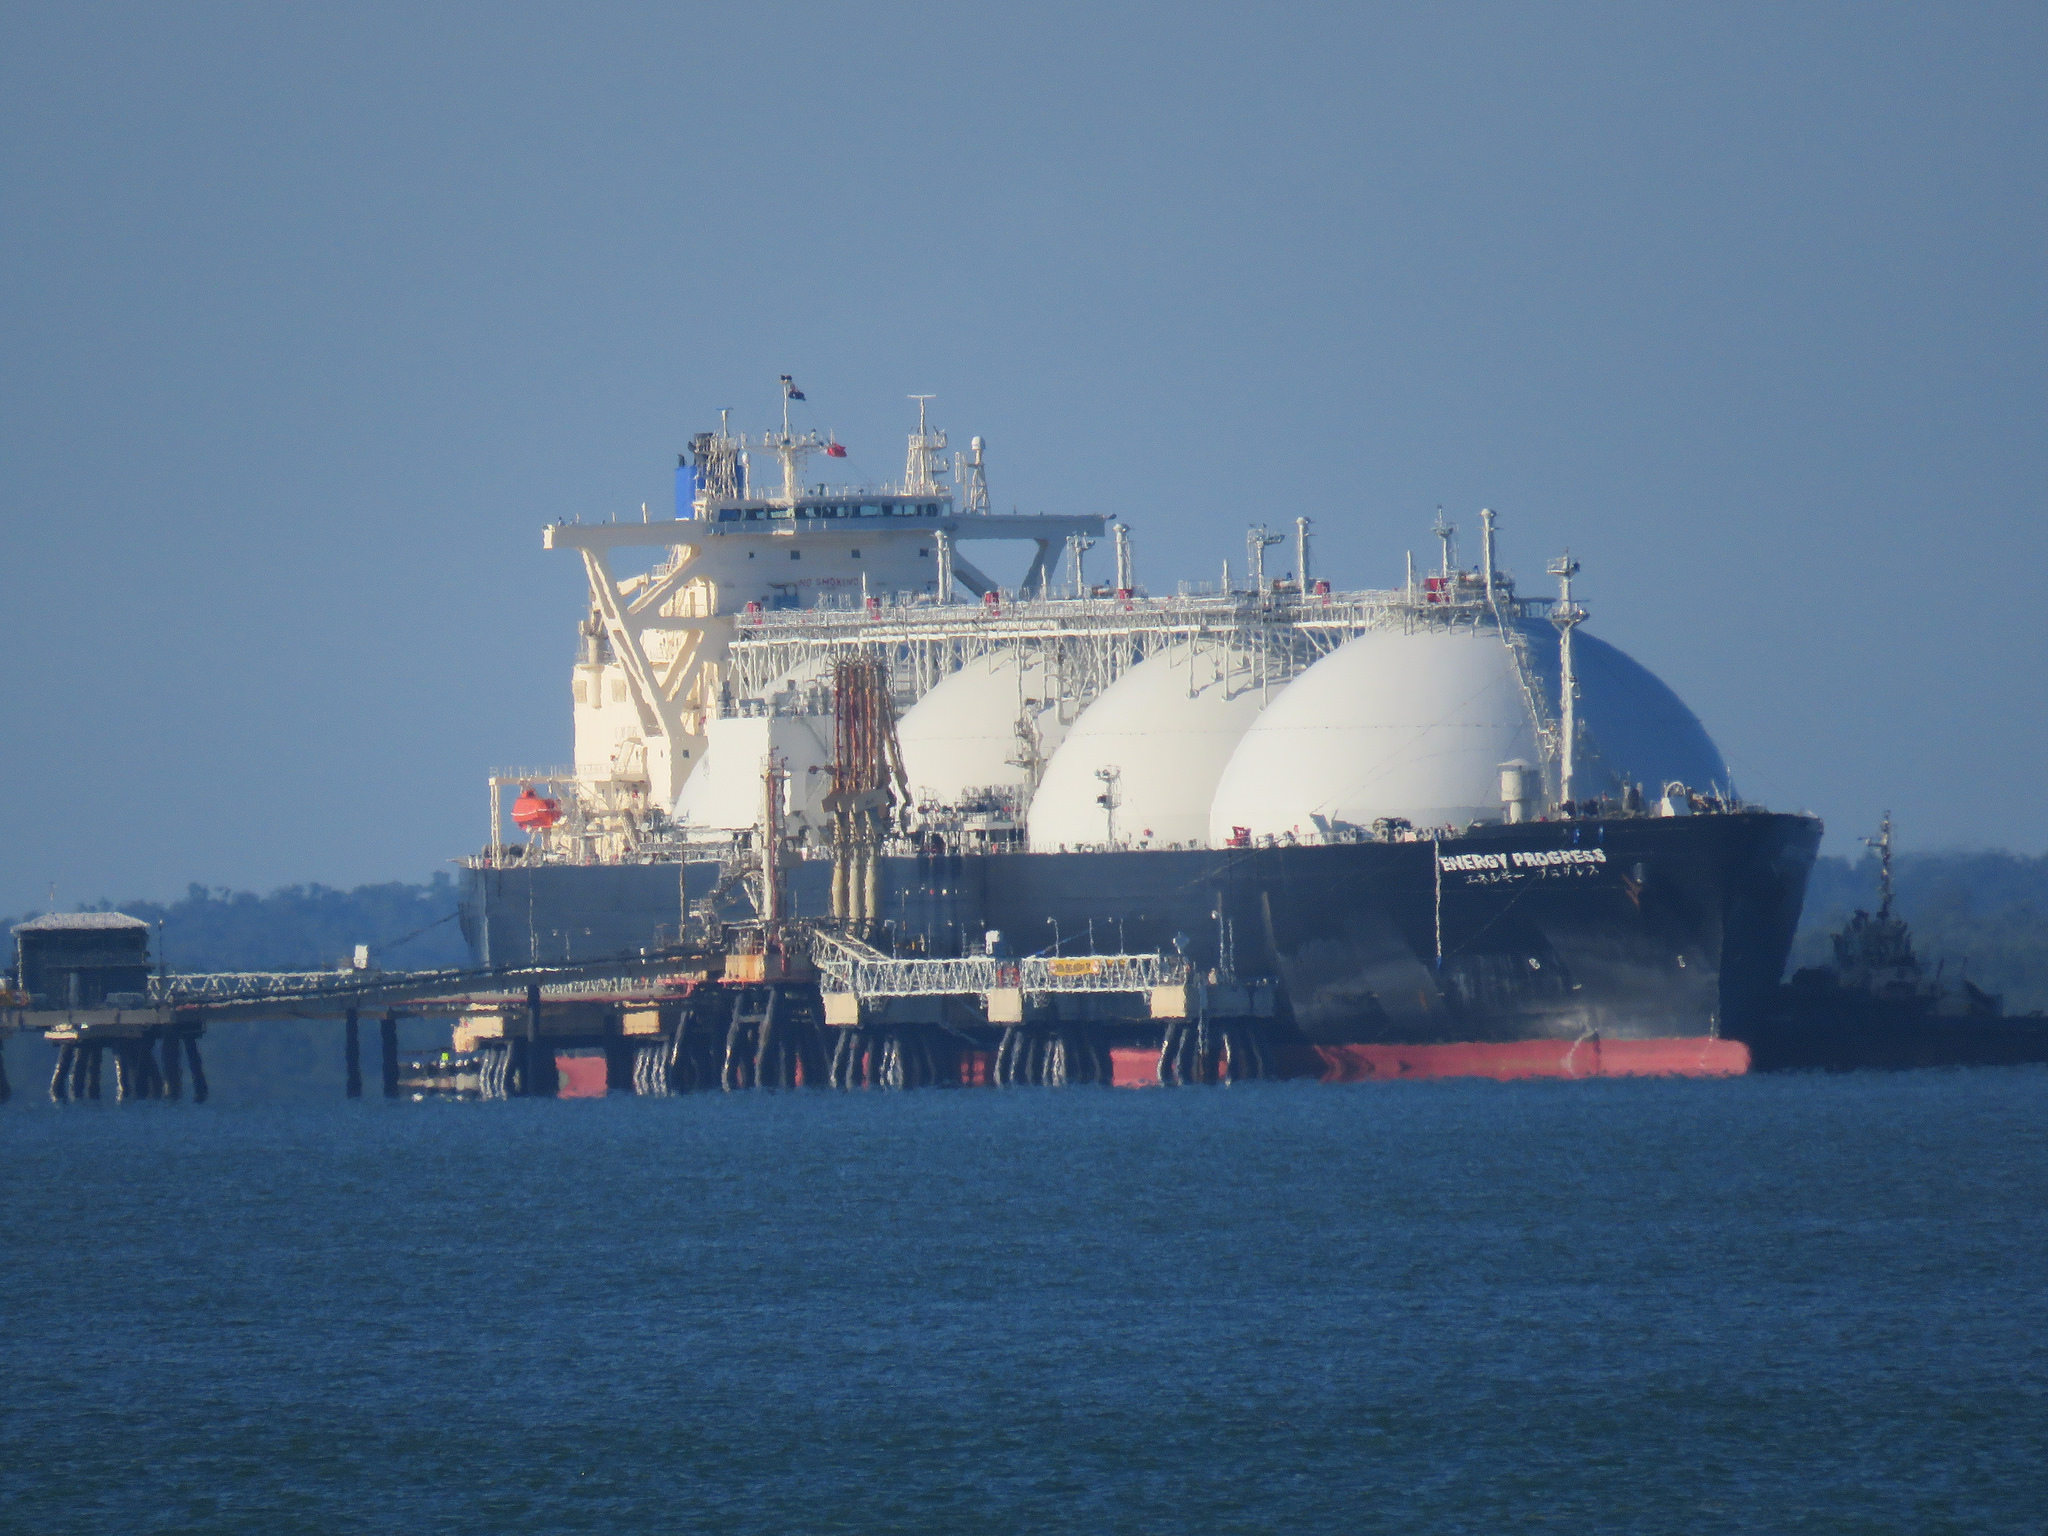 851px version of LNG tankers